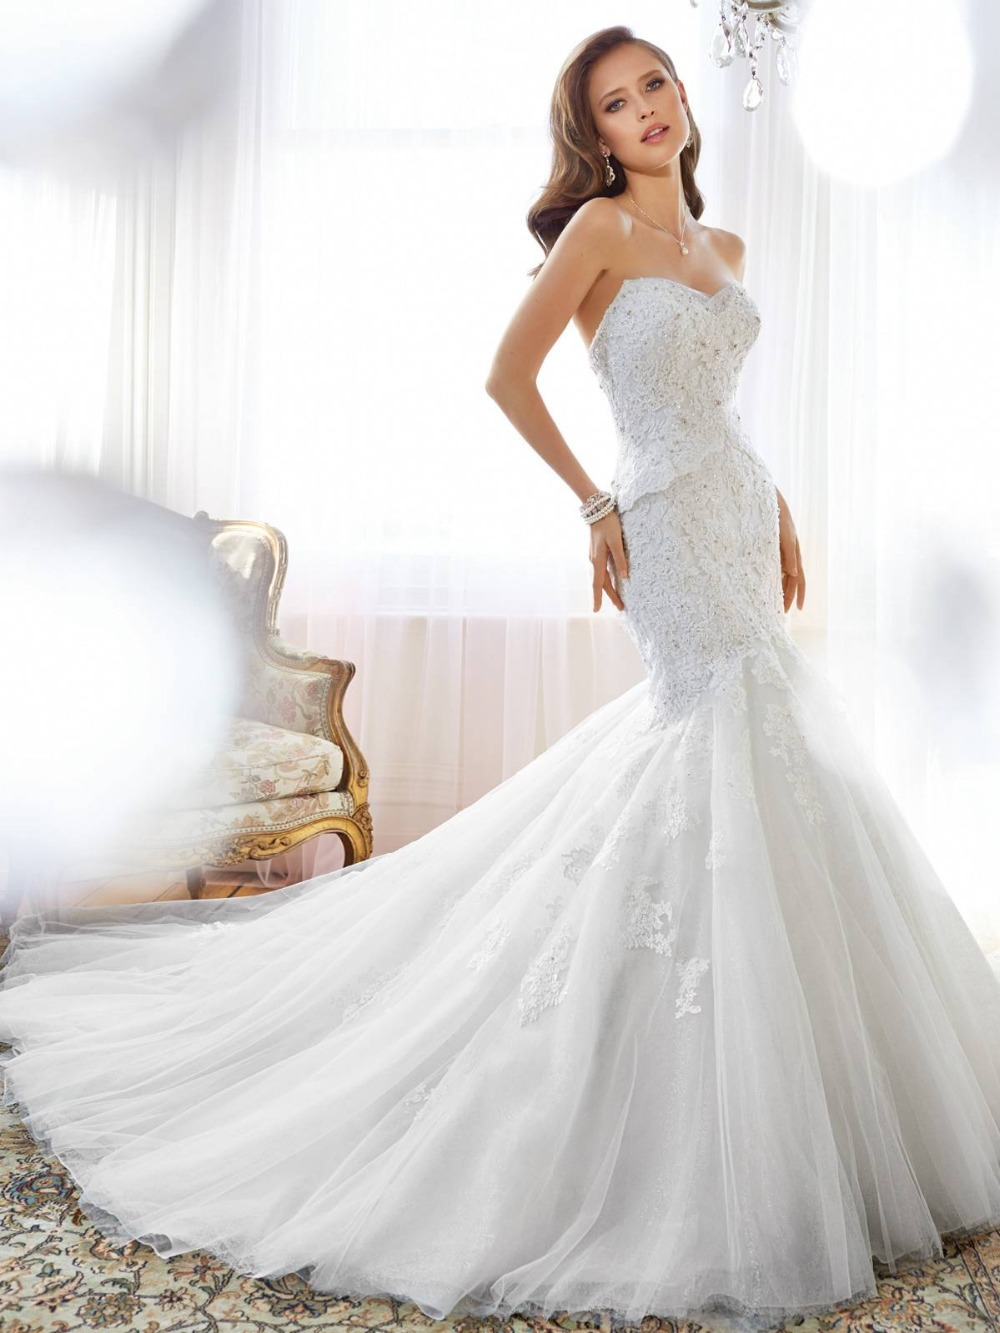 crystal wedding dresses Seek Out for Modified A Line Gowns Petite Wedding Dresses Tips for Our